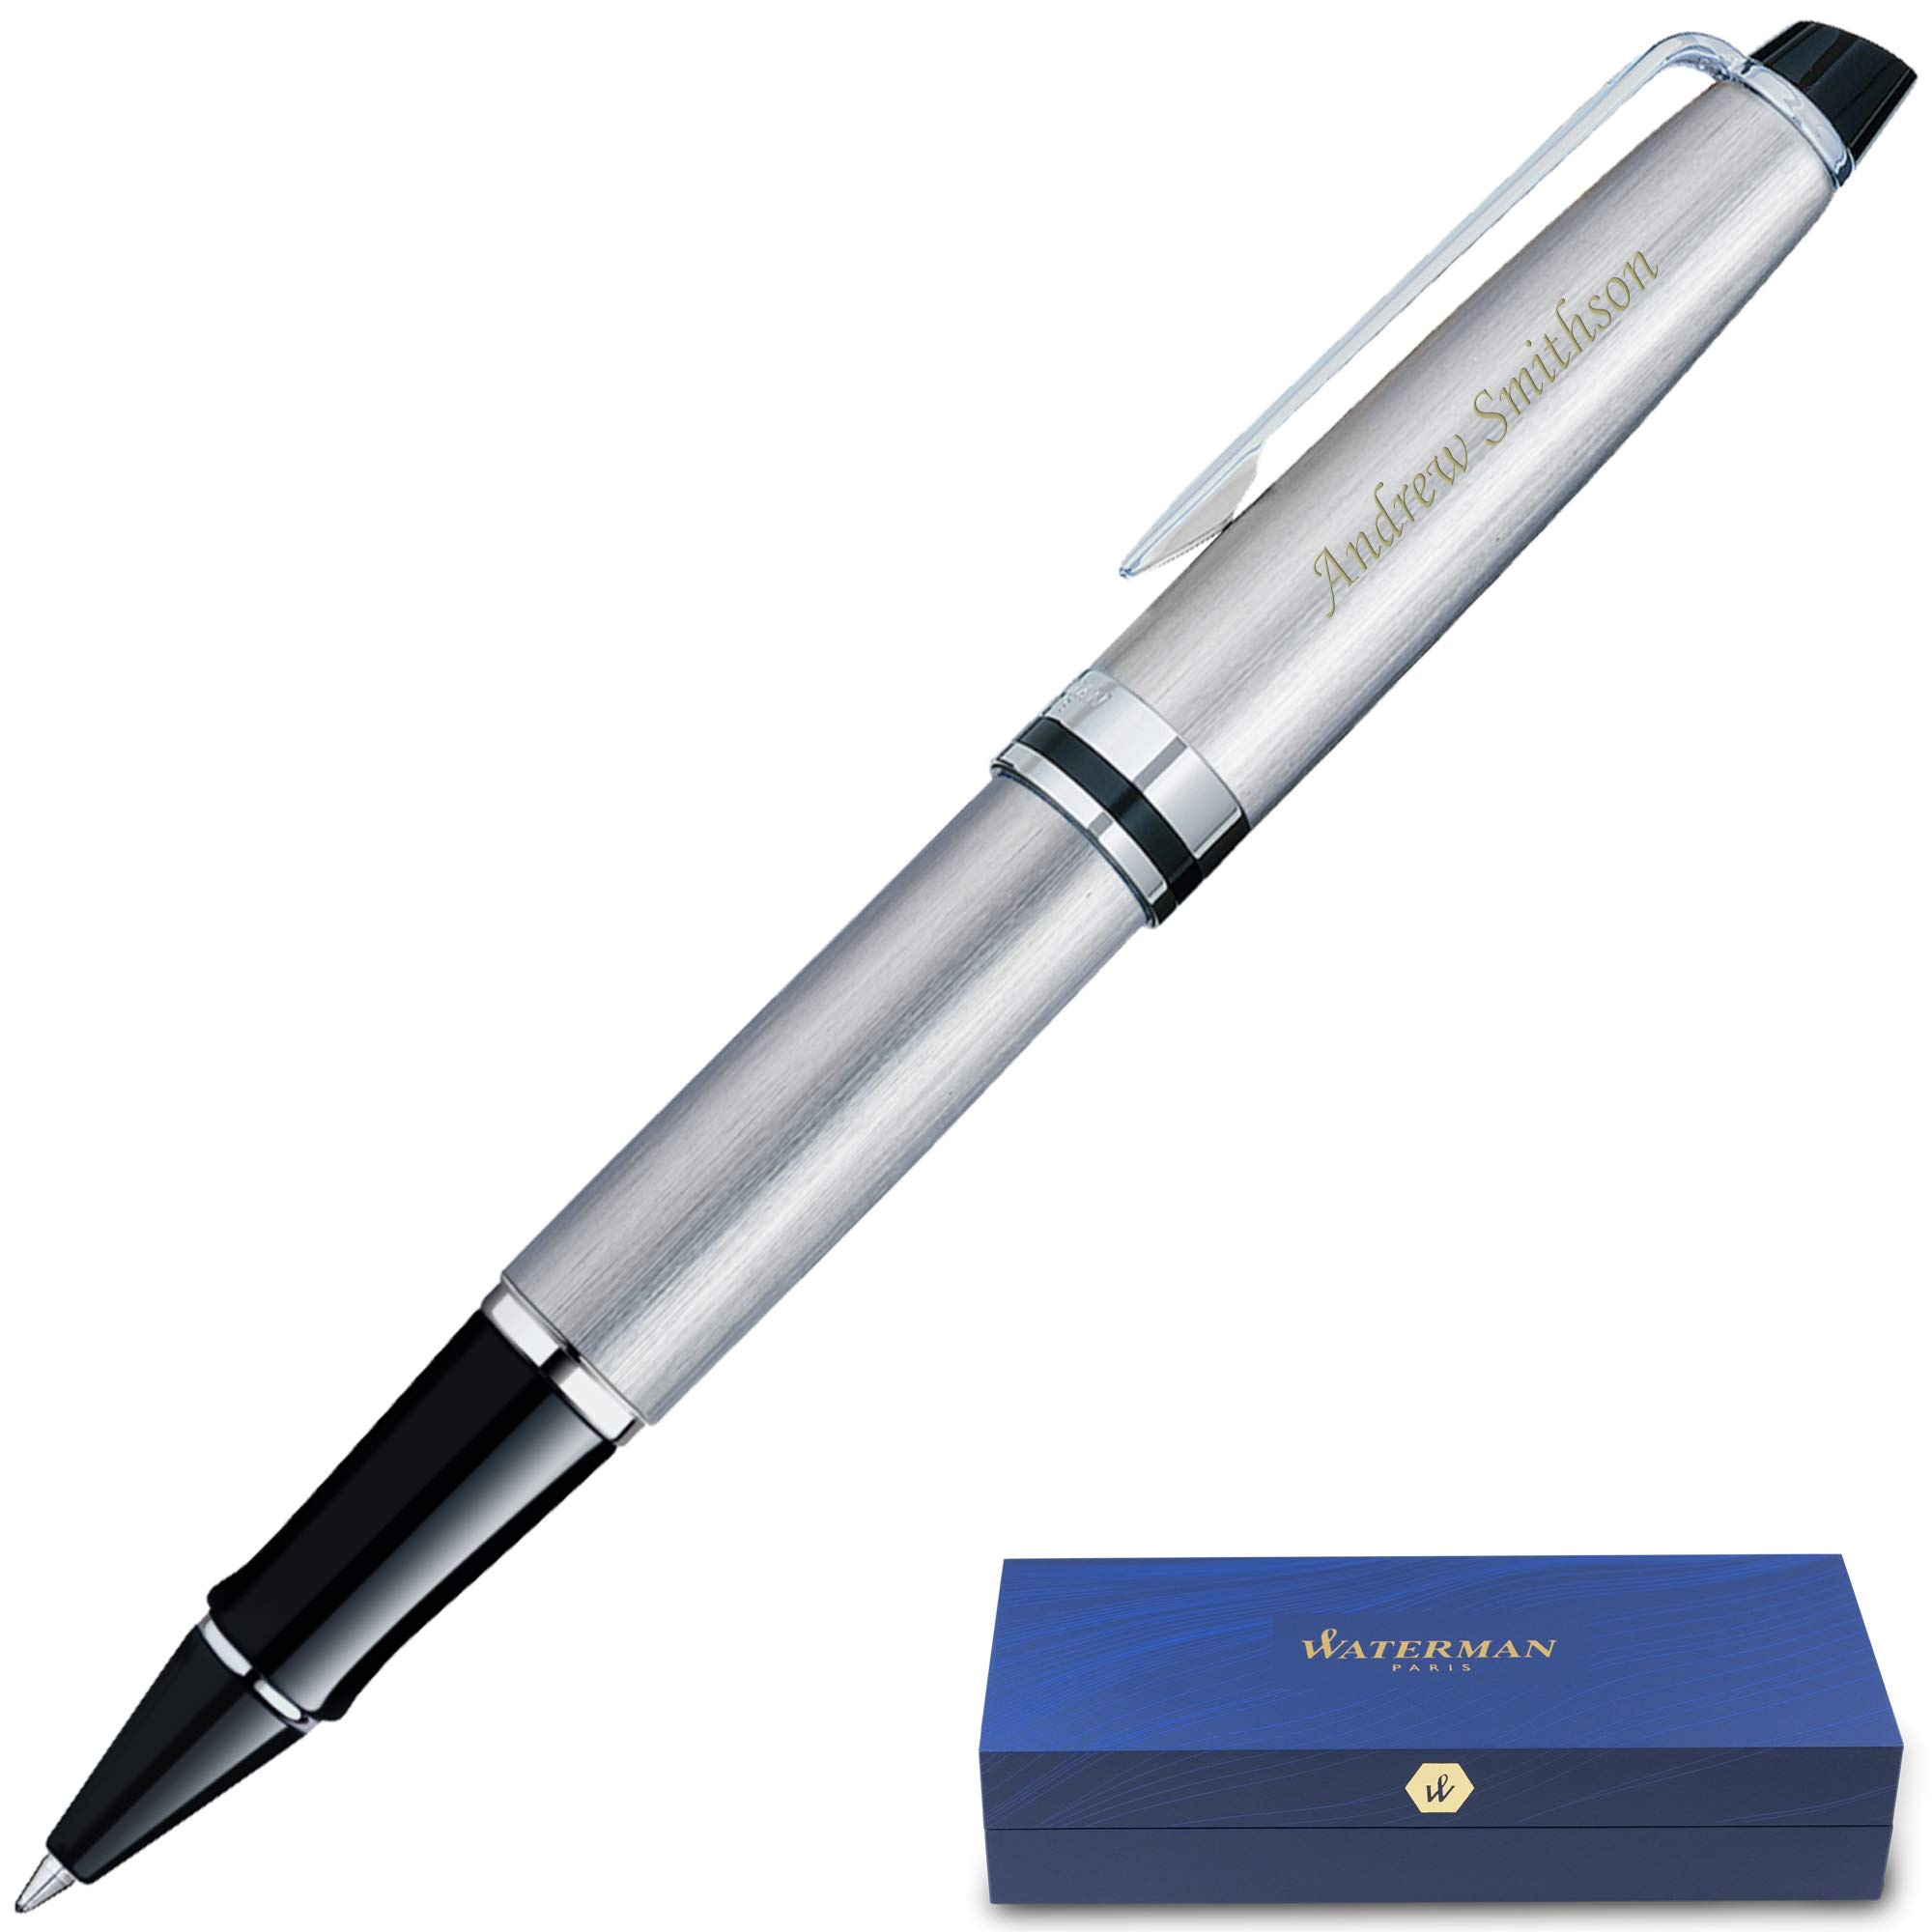 Engraved Waterman Pen   Personalized Waterman Expert Rollerball Pen - Stainless/Chrome Trim. Custom Engraved By Dayspring Pens.